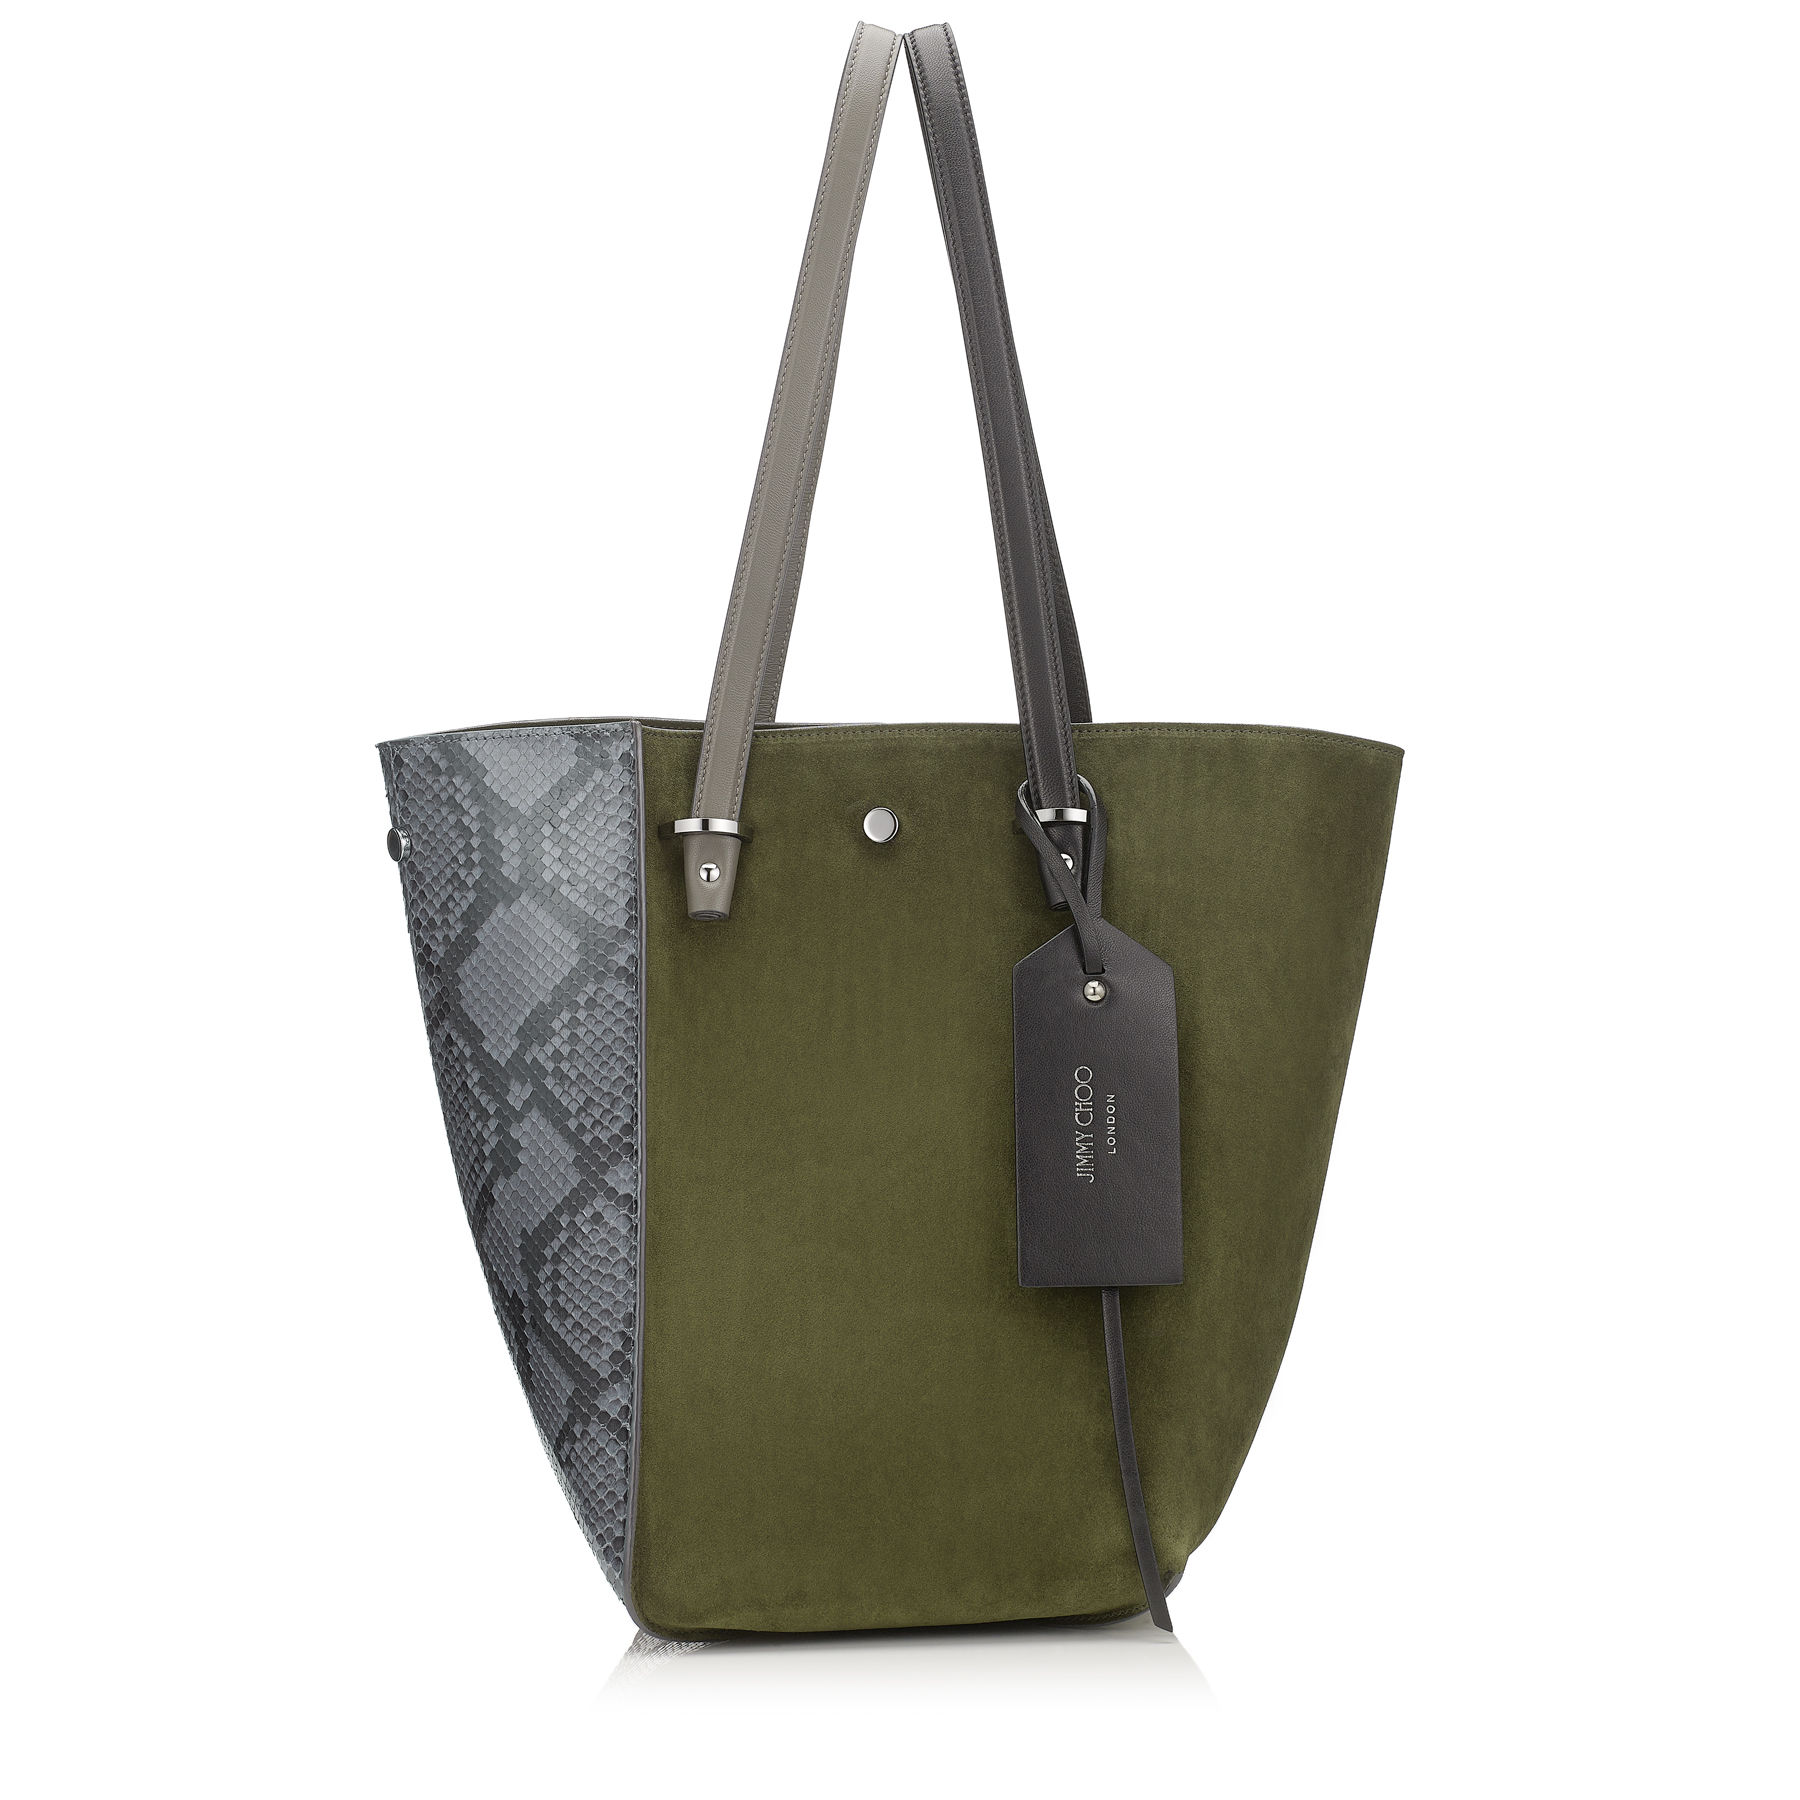 TWIST TOTE/M Taupe Grey Shiny Python and Army Green Suede Tote Bag